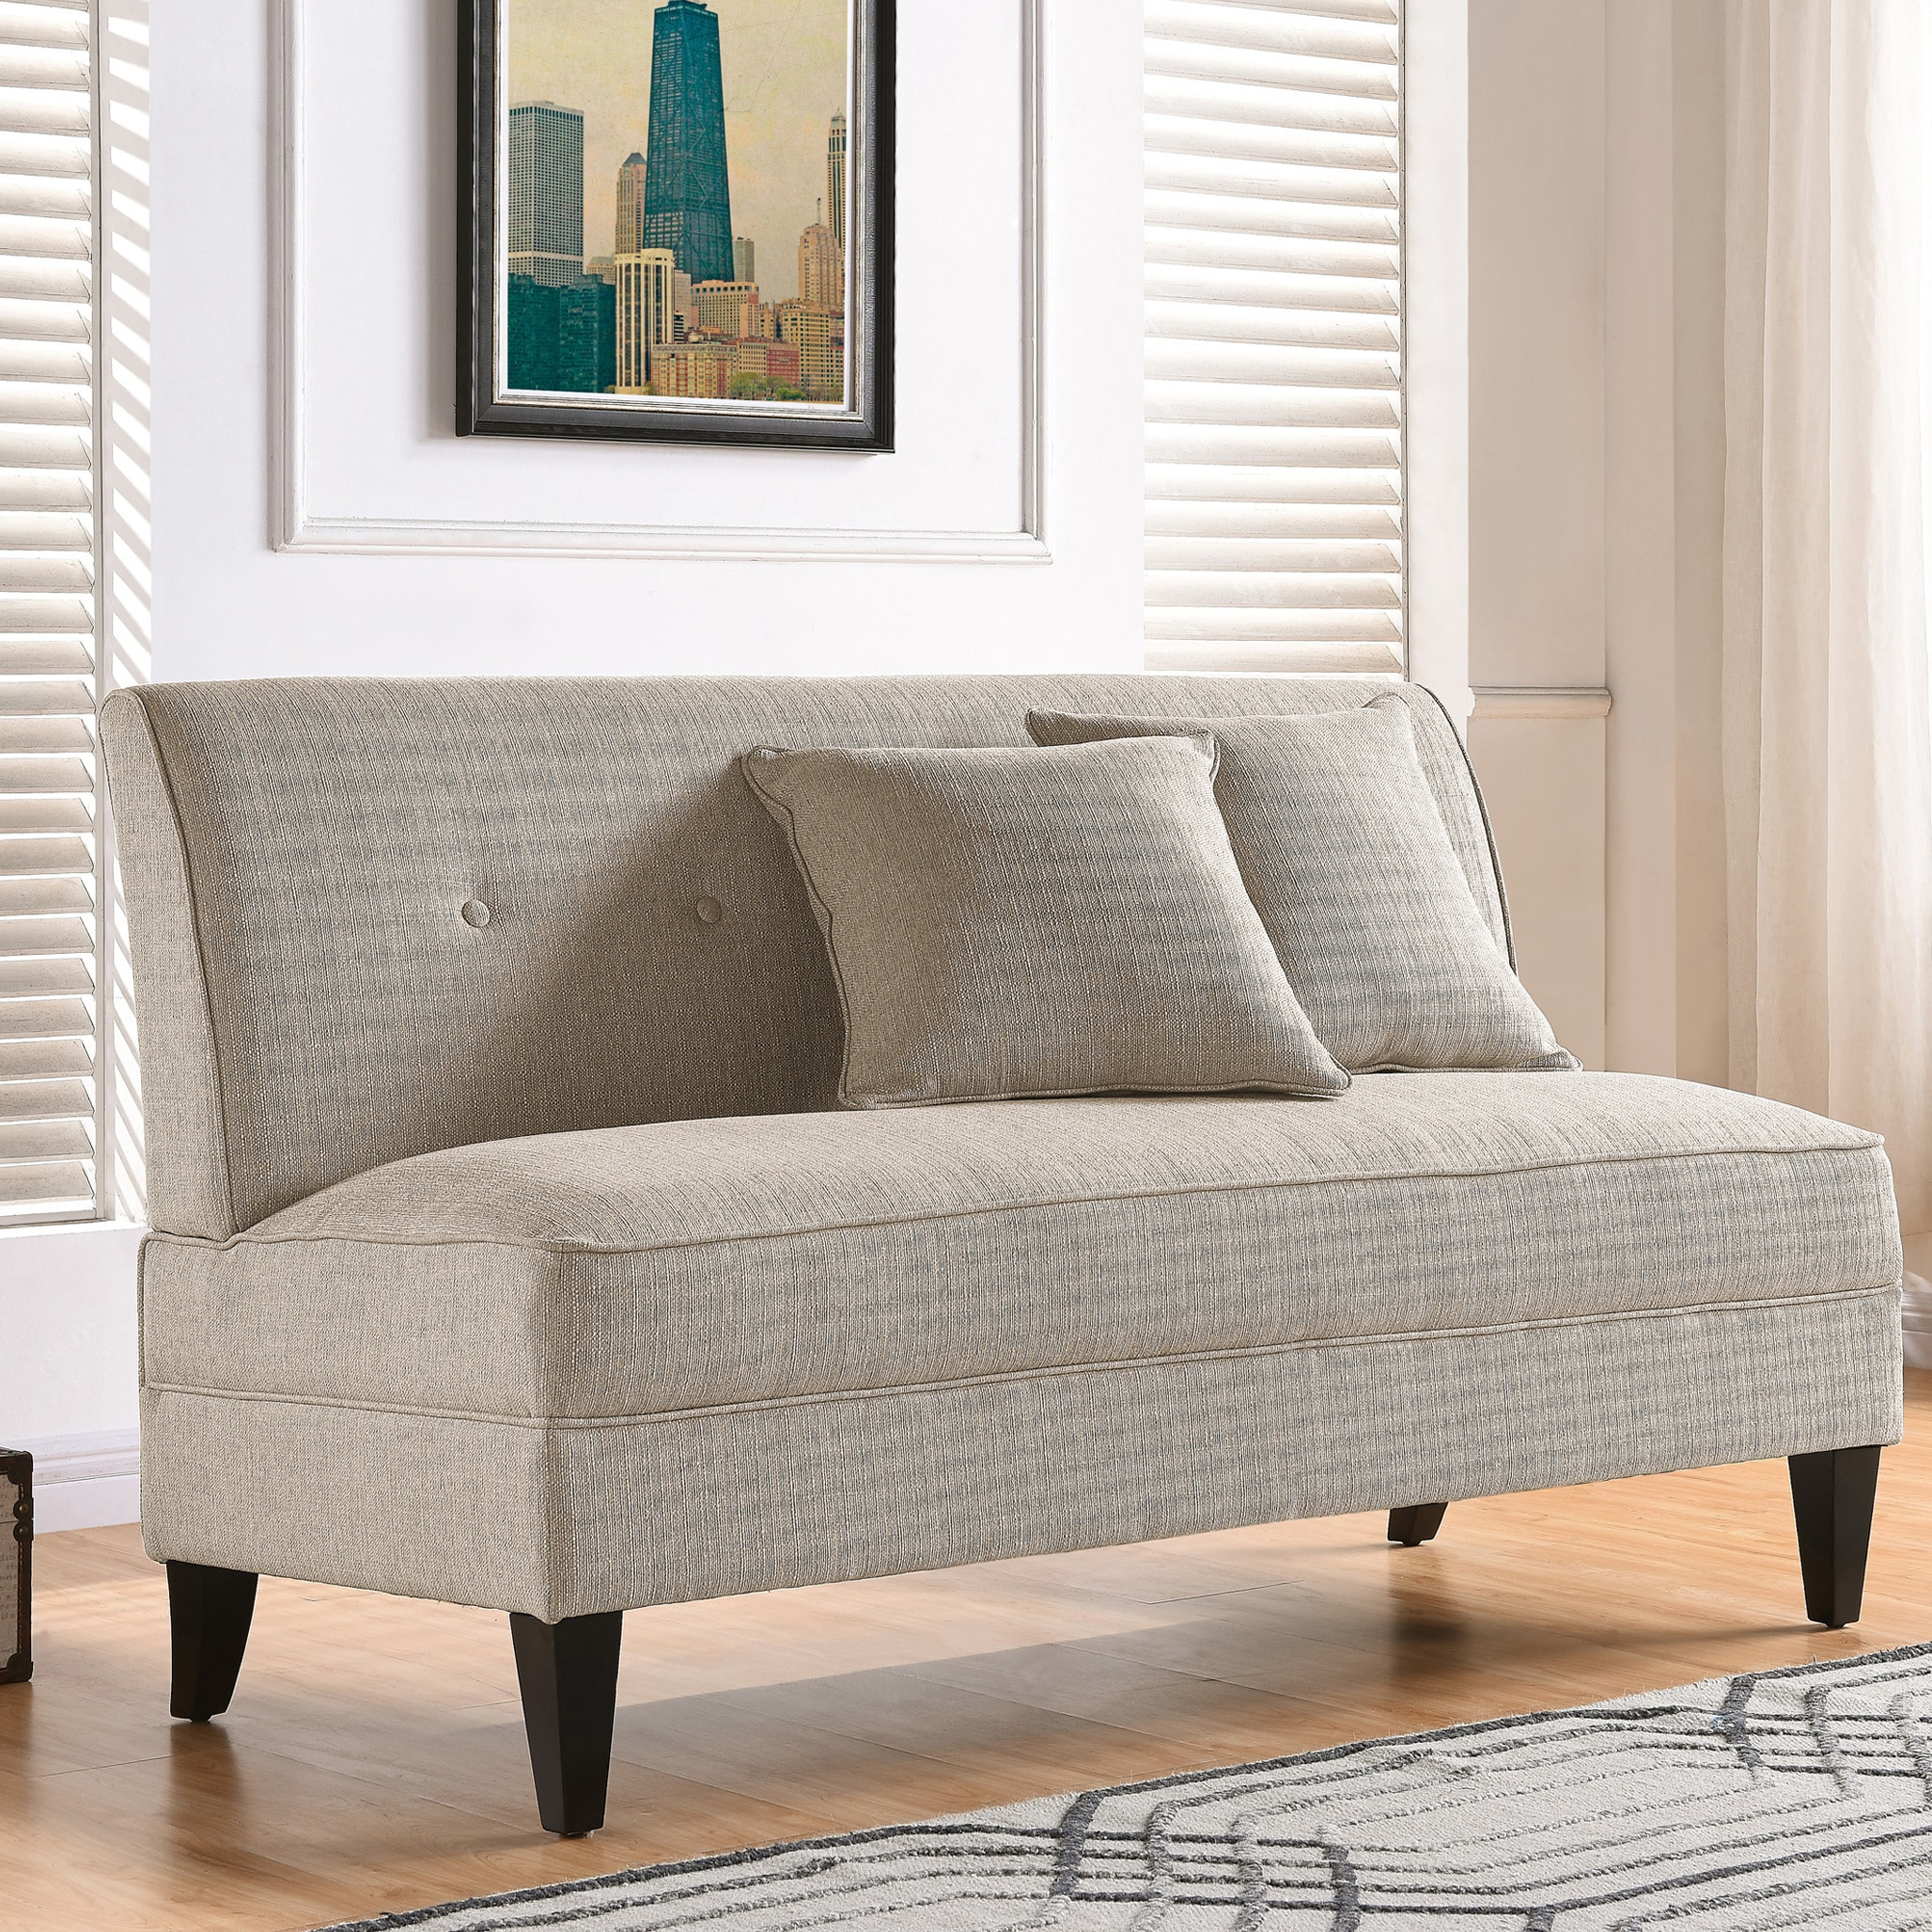 Sofa Online Purchase Buy Sofas Couches Online At Overstock Our Best Living Room